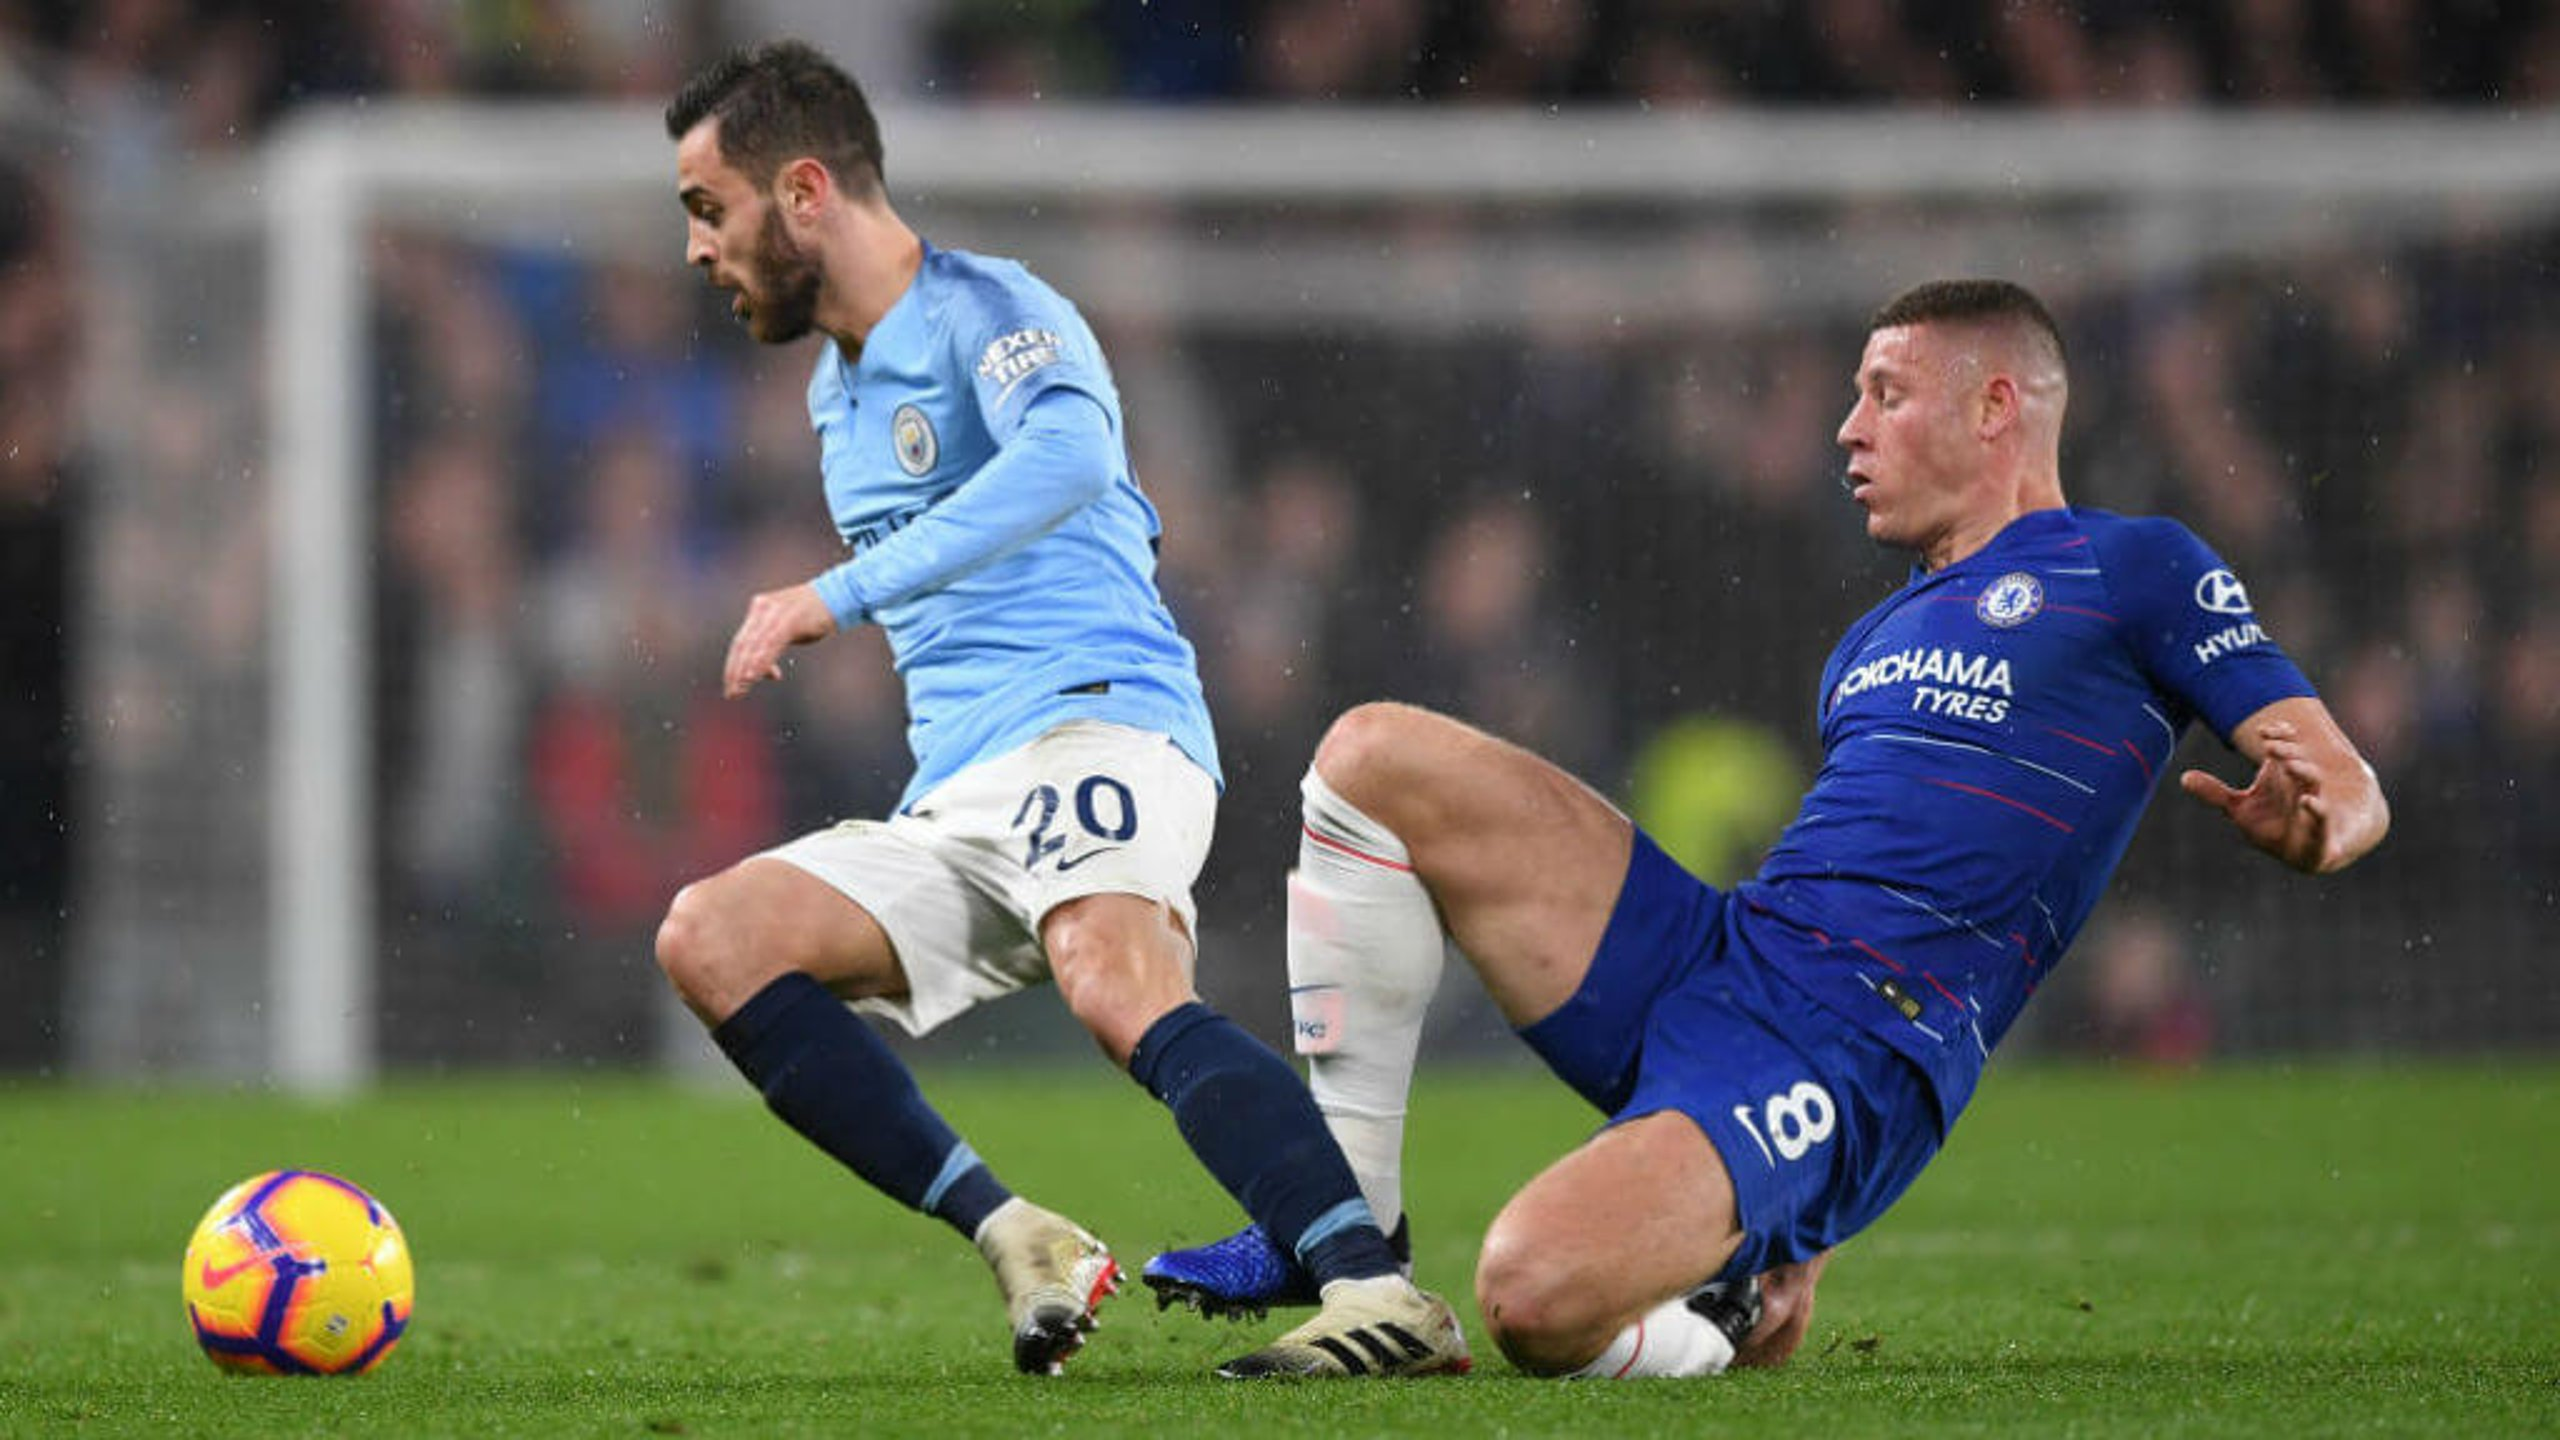 VAMOS BERNARDO: The City midfielder gets away from Ross Barkley